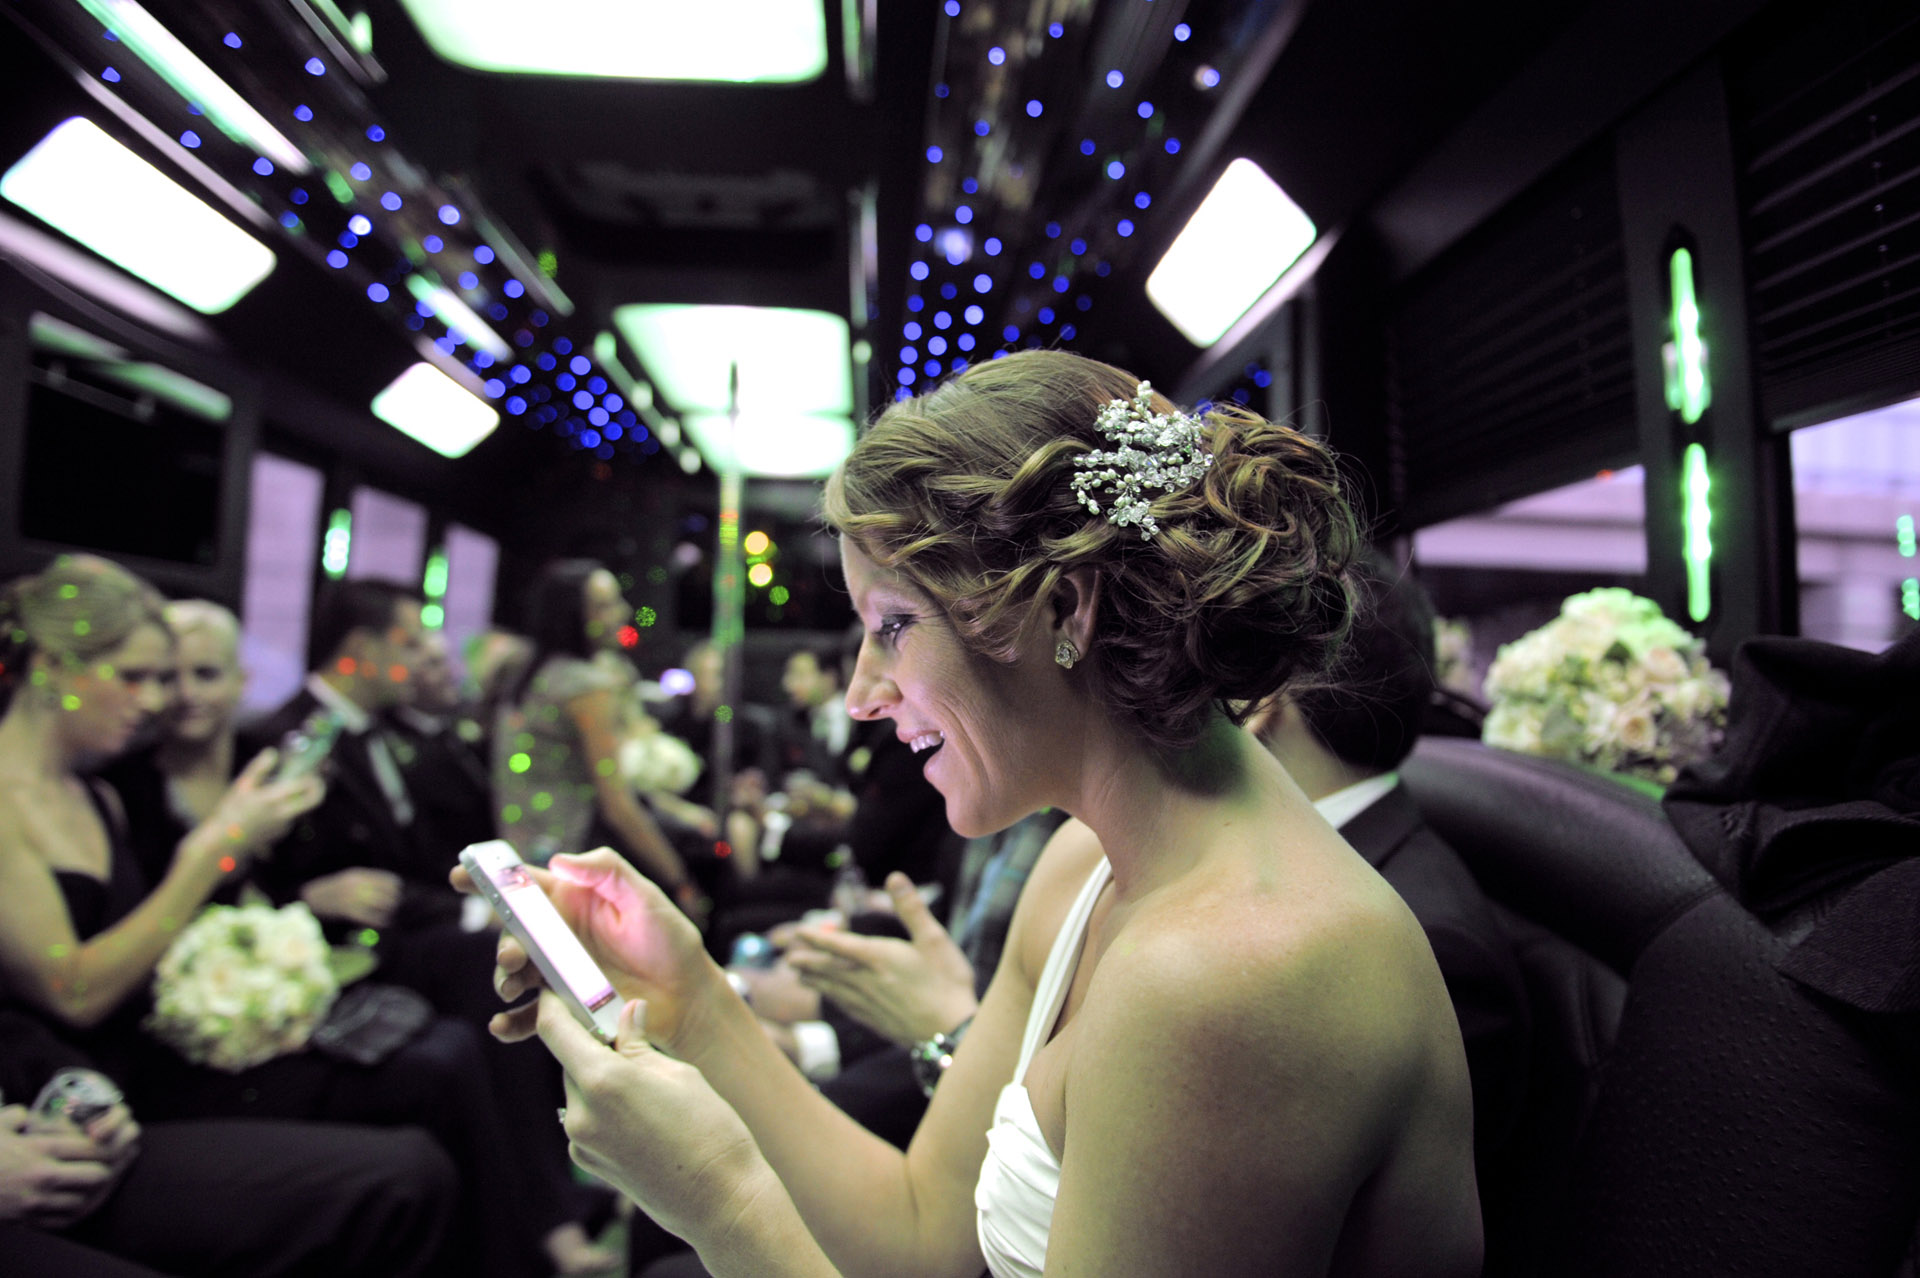 The Historic church Sweetest Heart of Mary and the Dearborn Inn of Detroit's historic church in Detroit and Dearborn, Michigan wedding photographer's of the bride changing her Facebook status in the limo bus on her way to her wedding reception at the Dearborn Inn in Dearborn, Michigan.